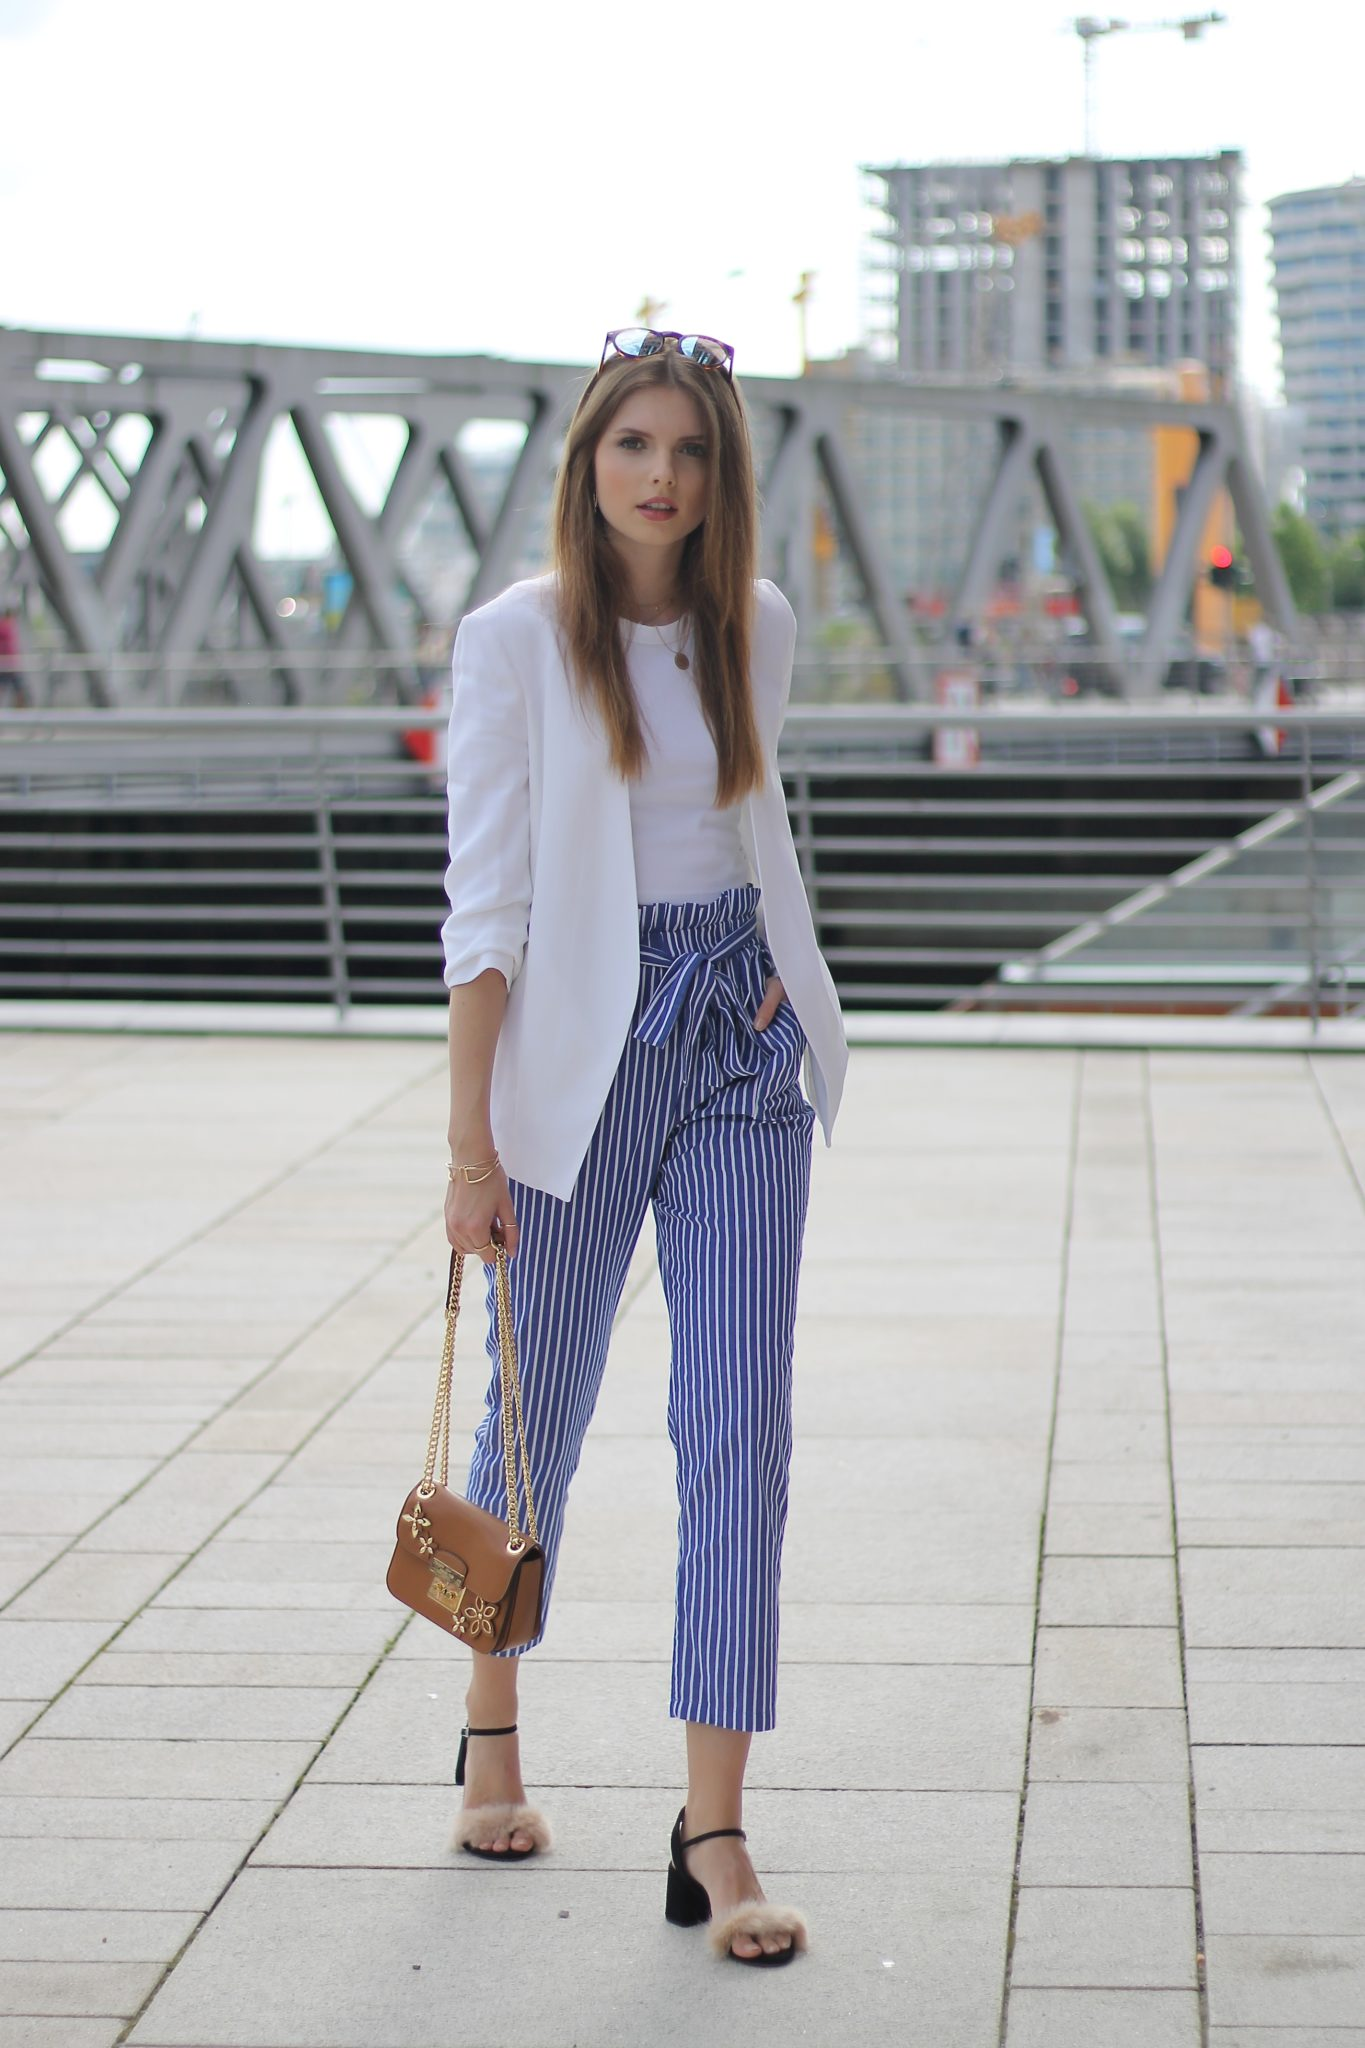 IMG 8233 - CASUAL STRIPED PANTS I HAMBURG STREETSTYLE